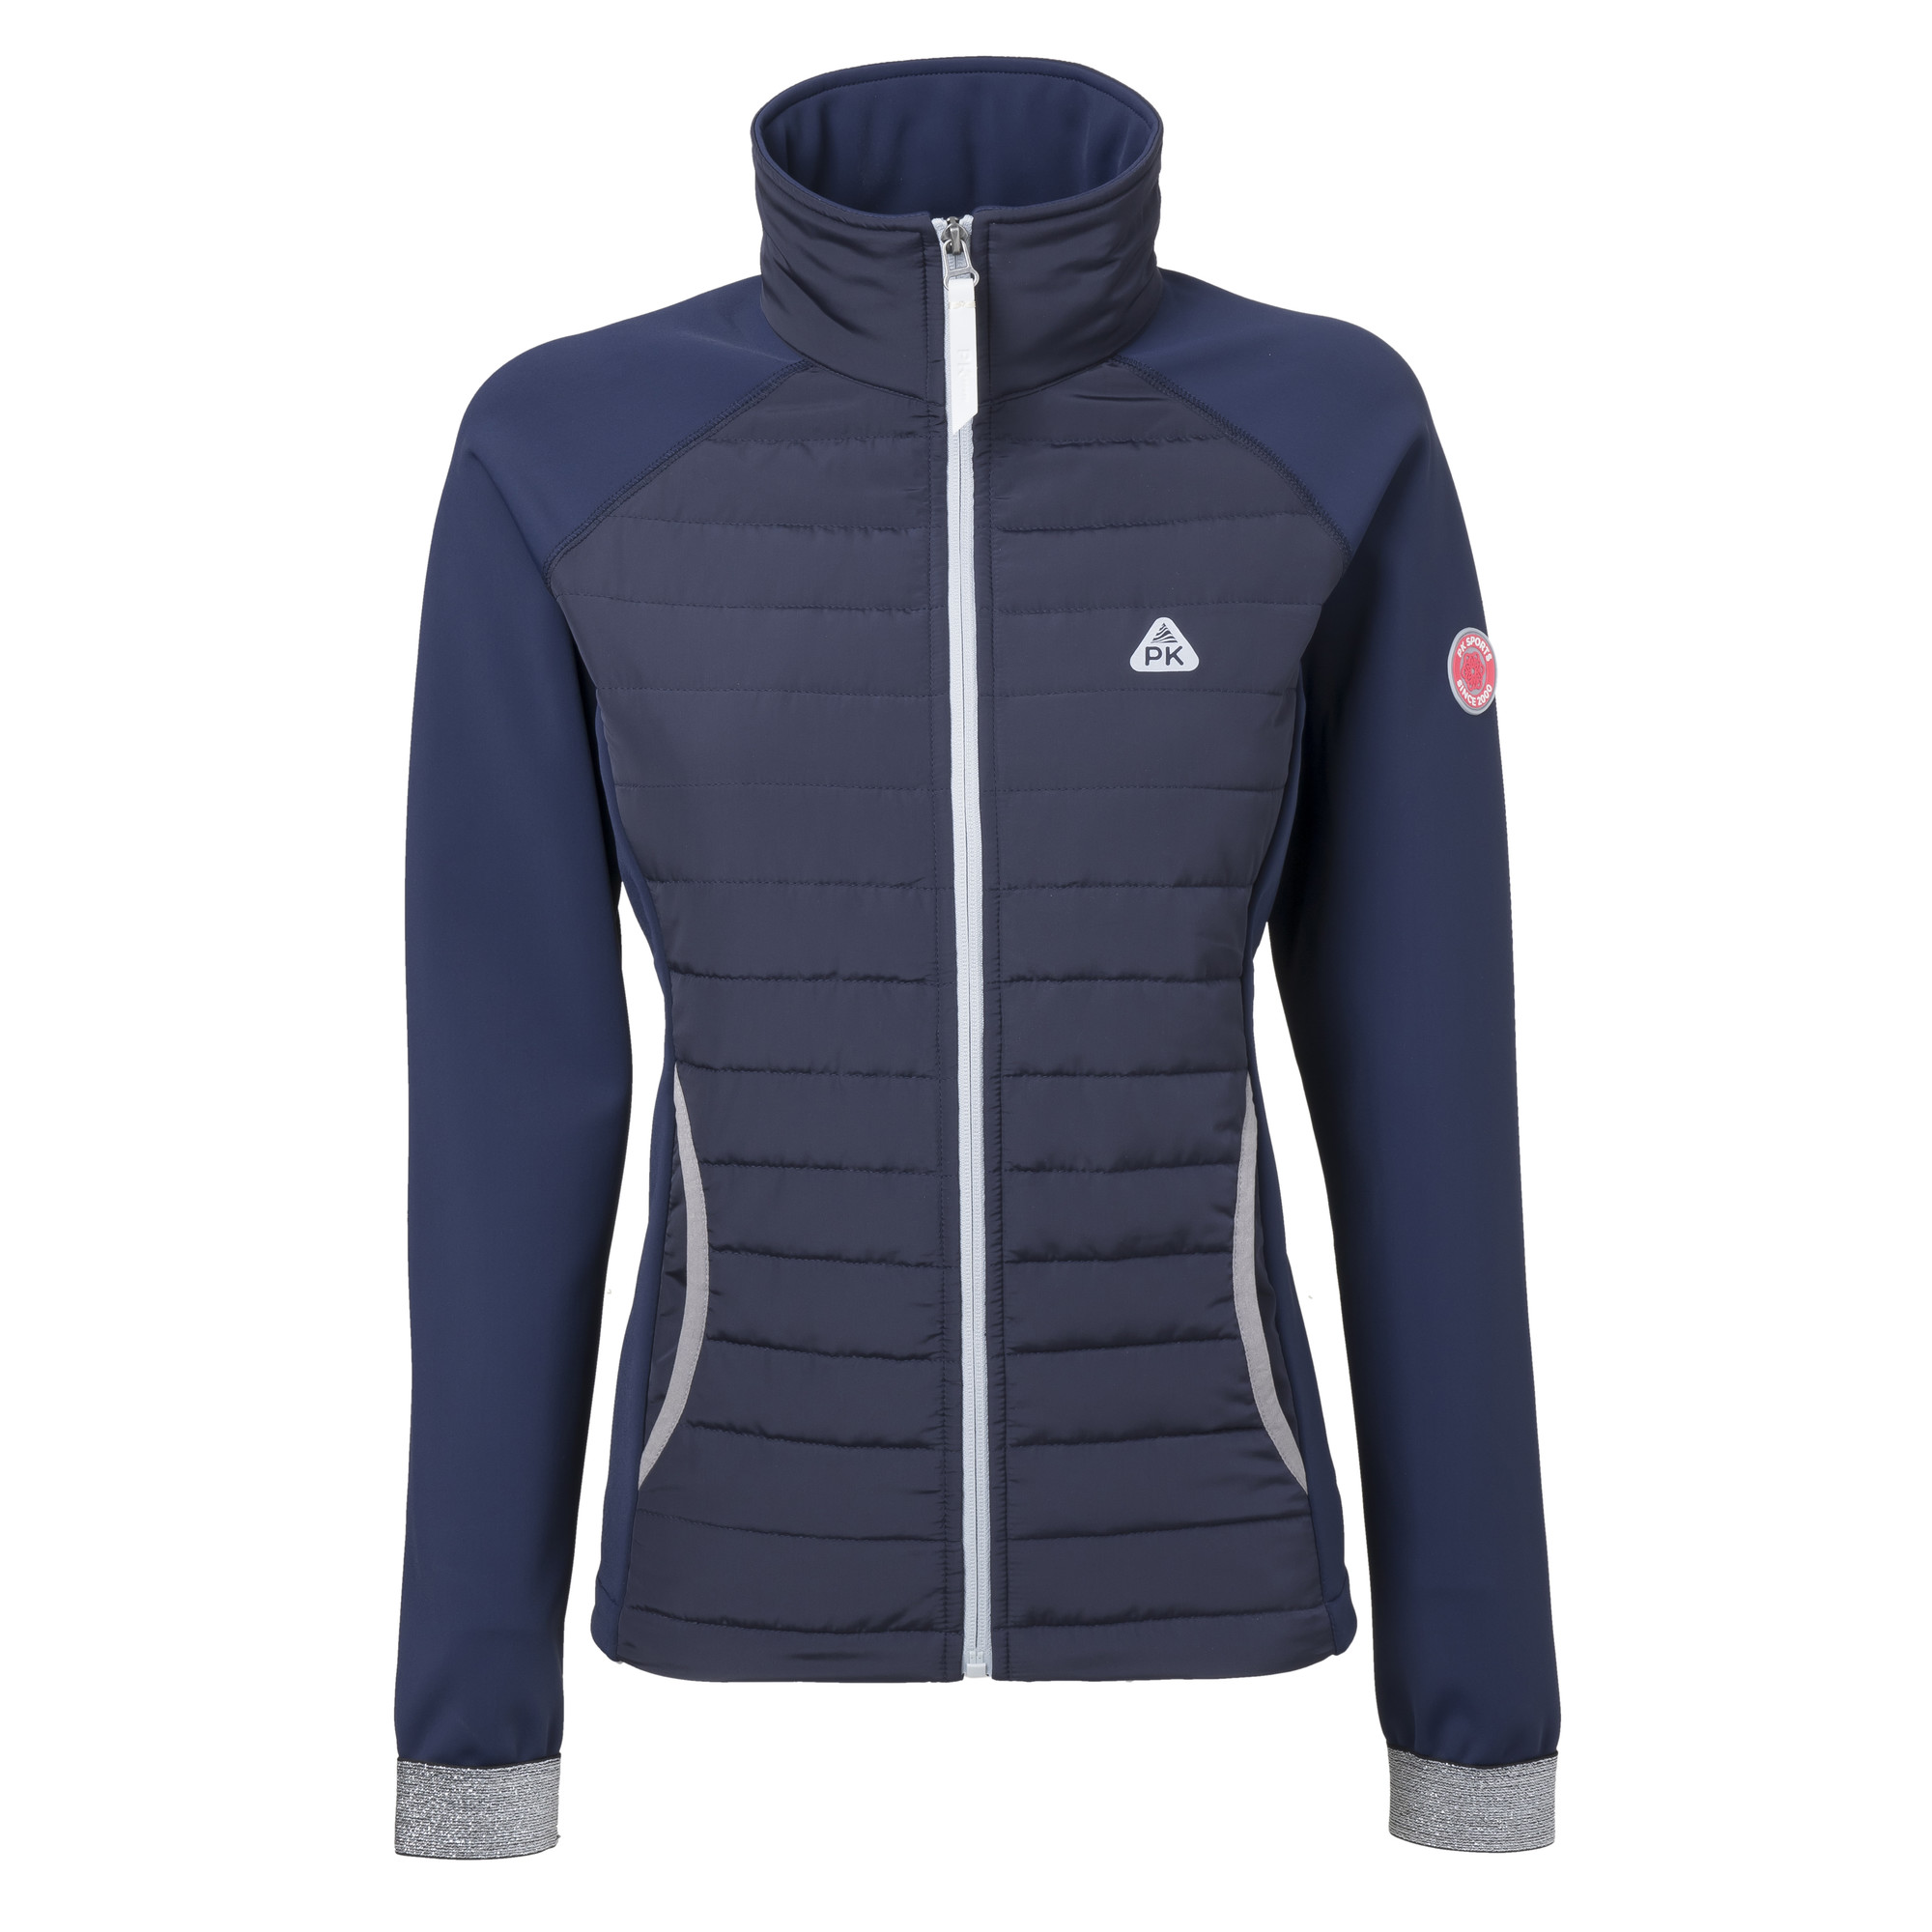 PK Jarville softshell